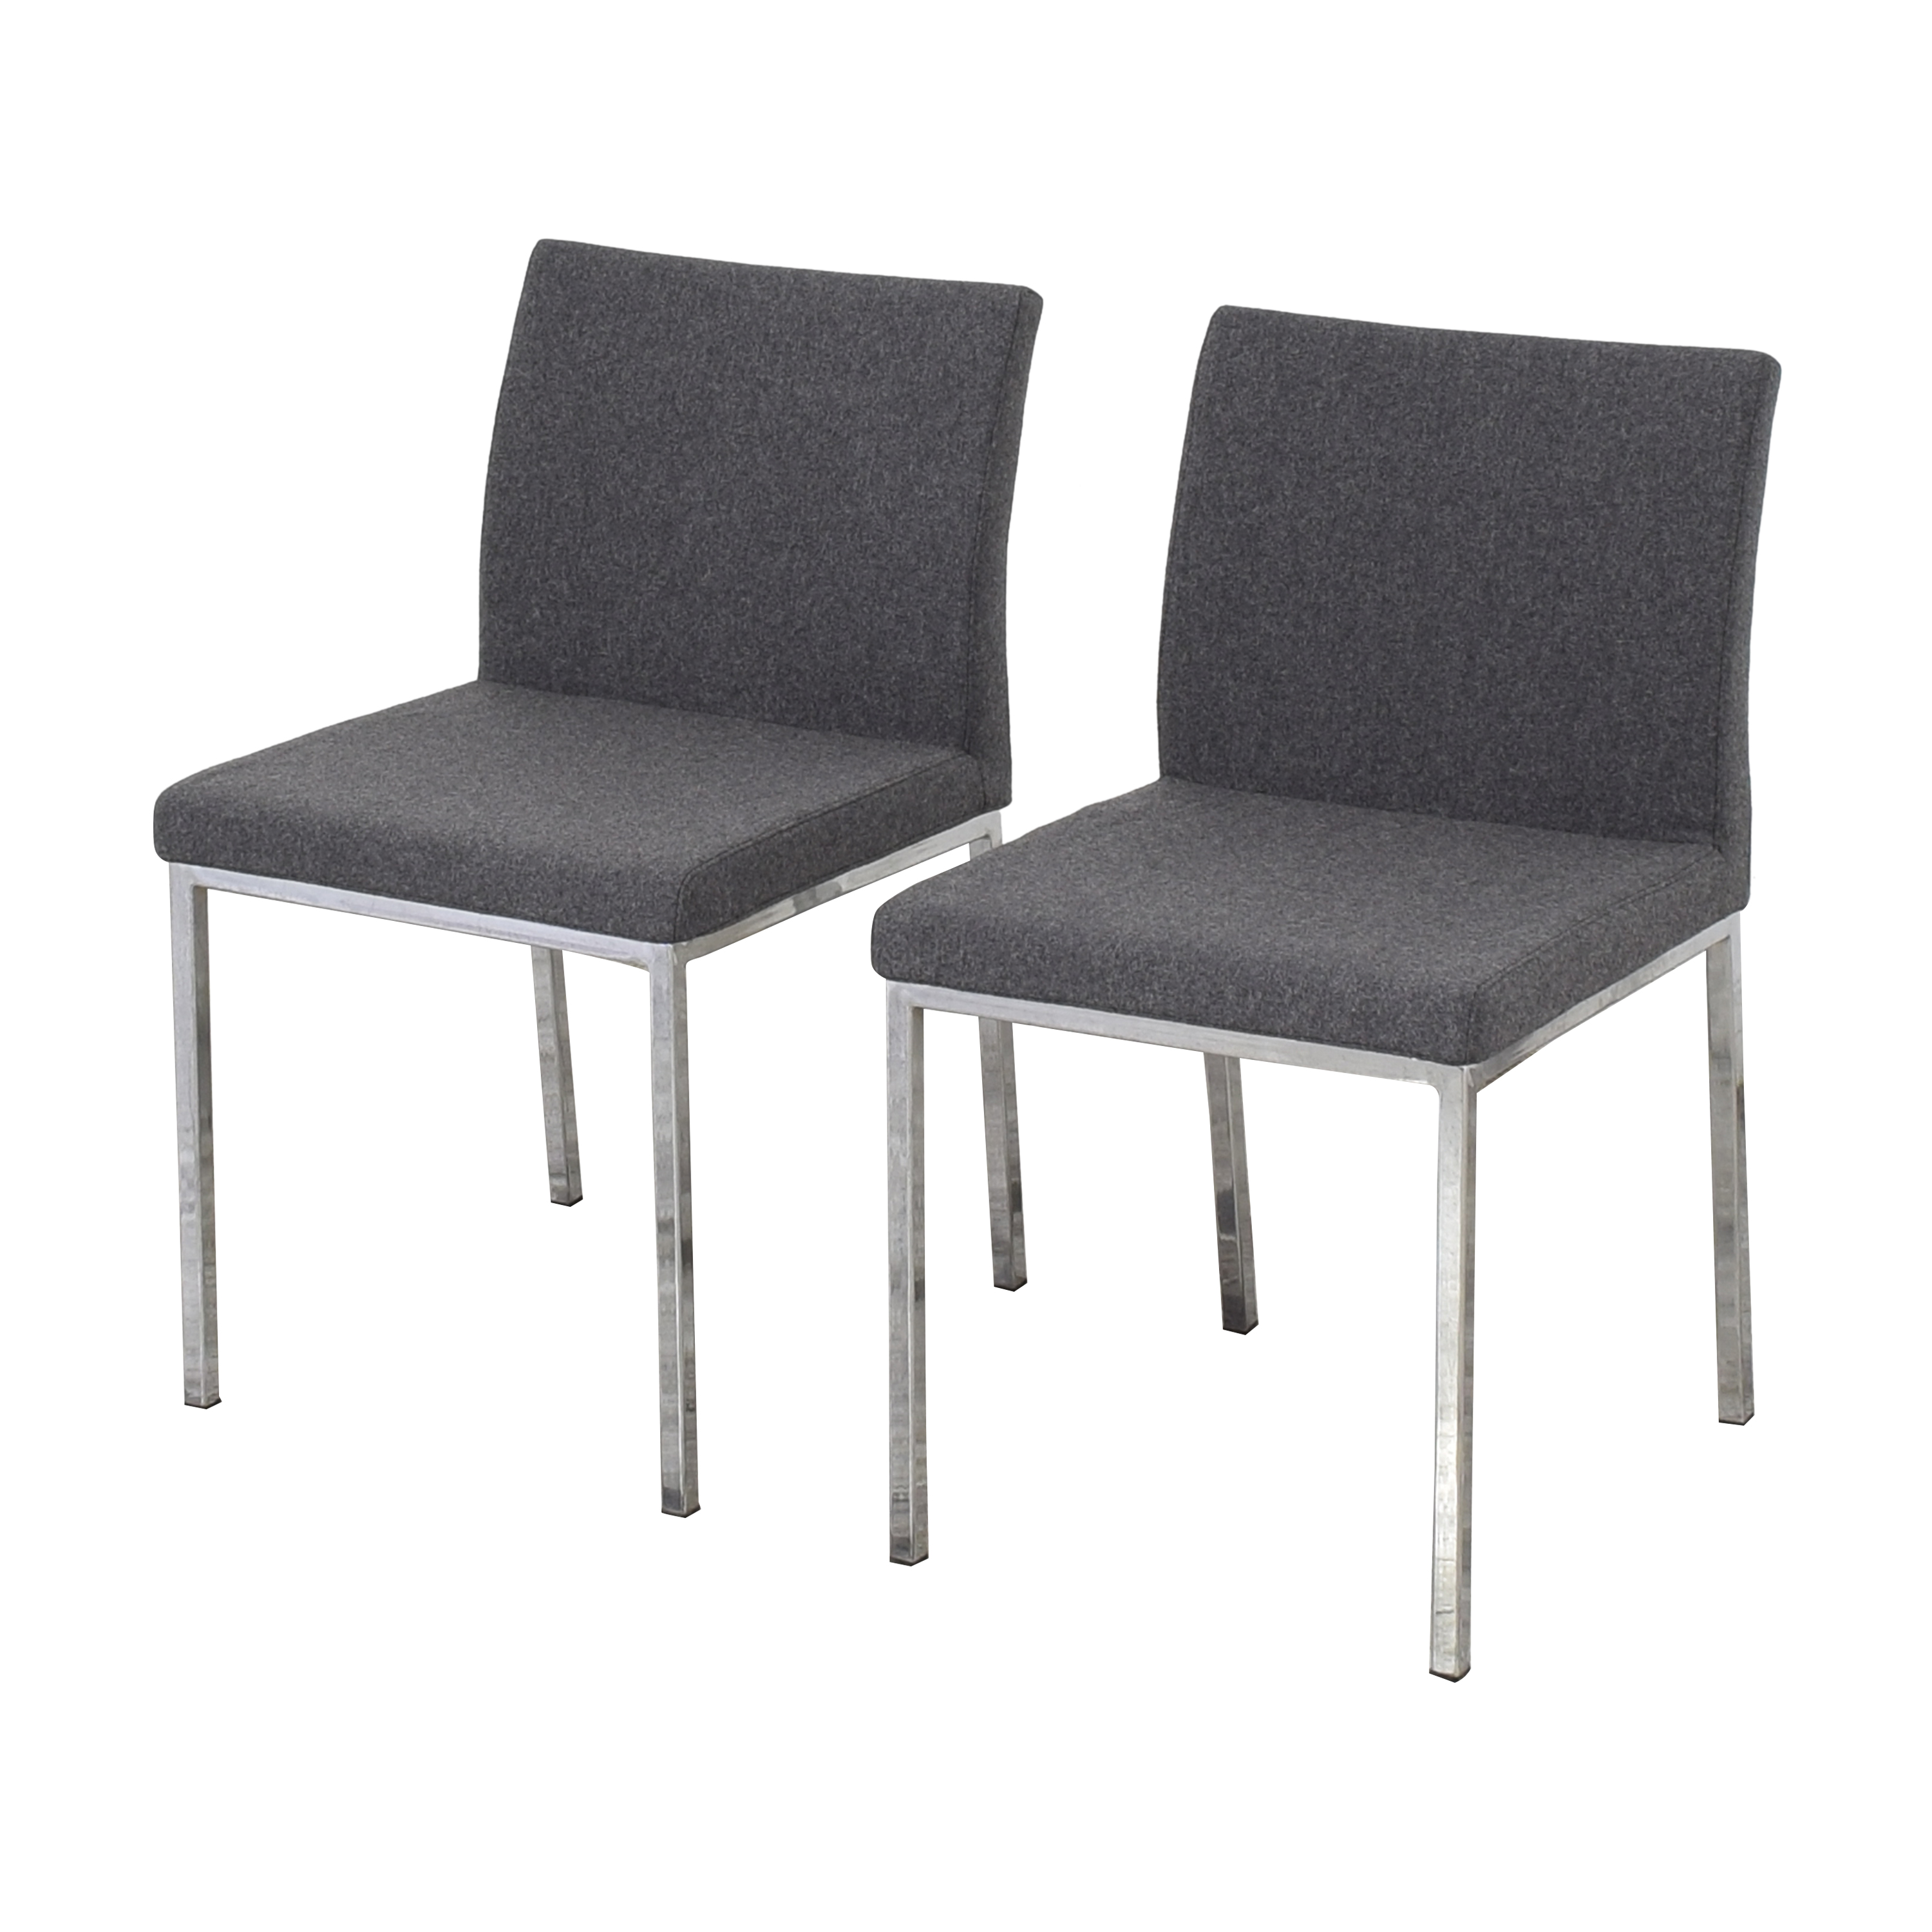 Crate & Barrel Crate & Barrel Upholstered Dining Chairs